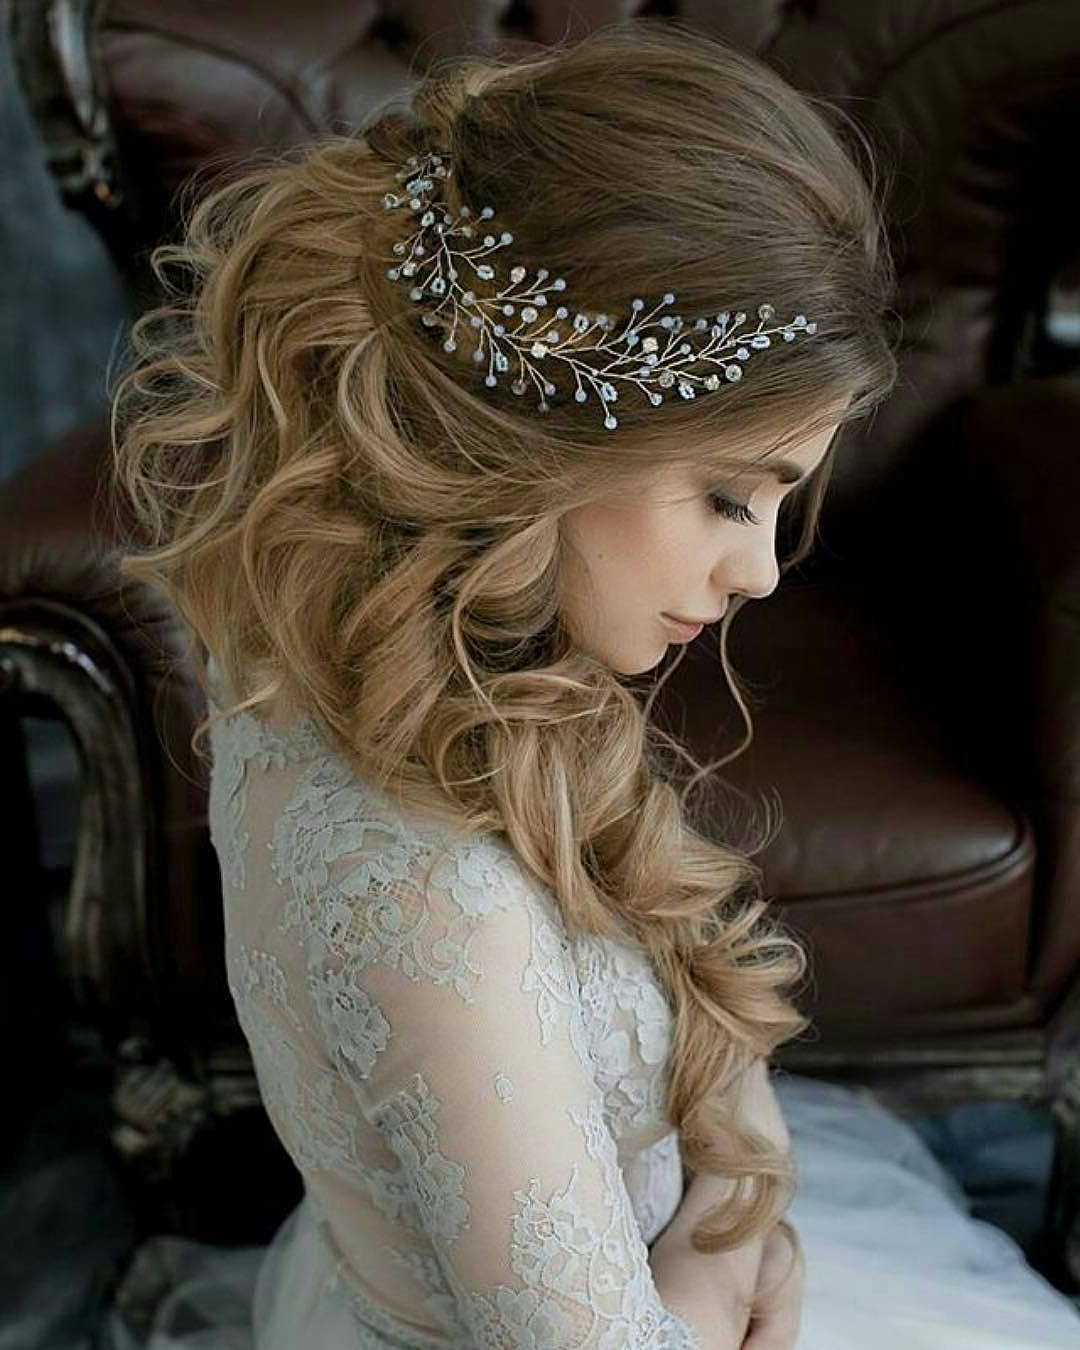 Recent Bouffant Half Updo Wedding Hairstyles For Long Hair Pertaining To 10 Lavish Wedding Hairstyles For Long Hair – Wedding Hairstyle Ideas (View 15 of 20)